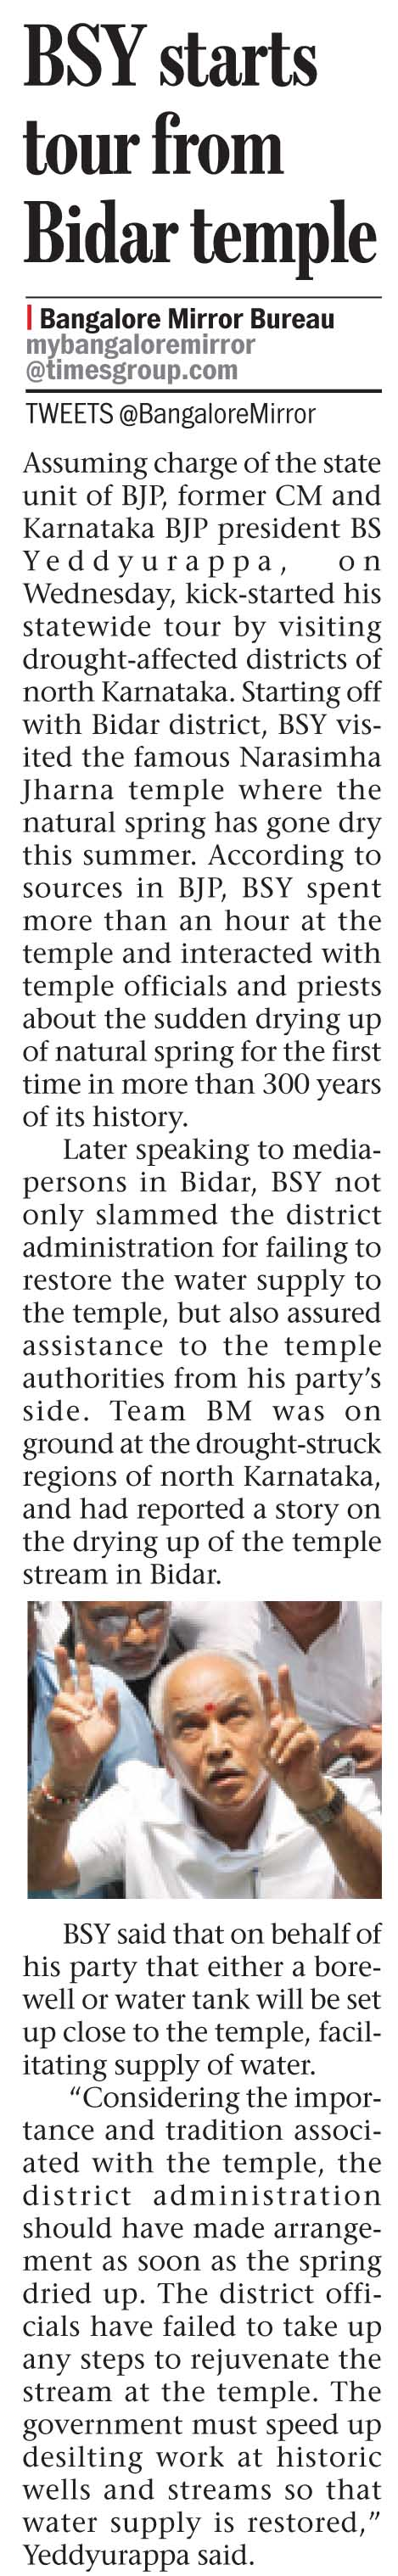 BSY starts tour from Bider temple